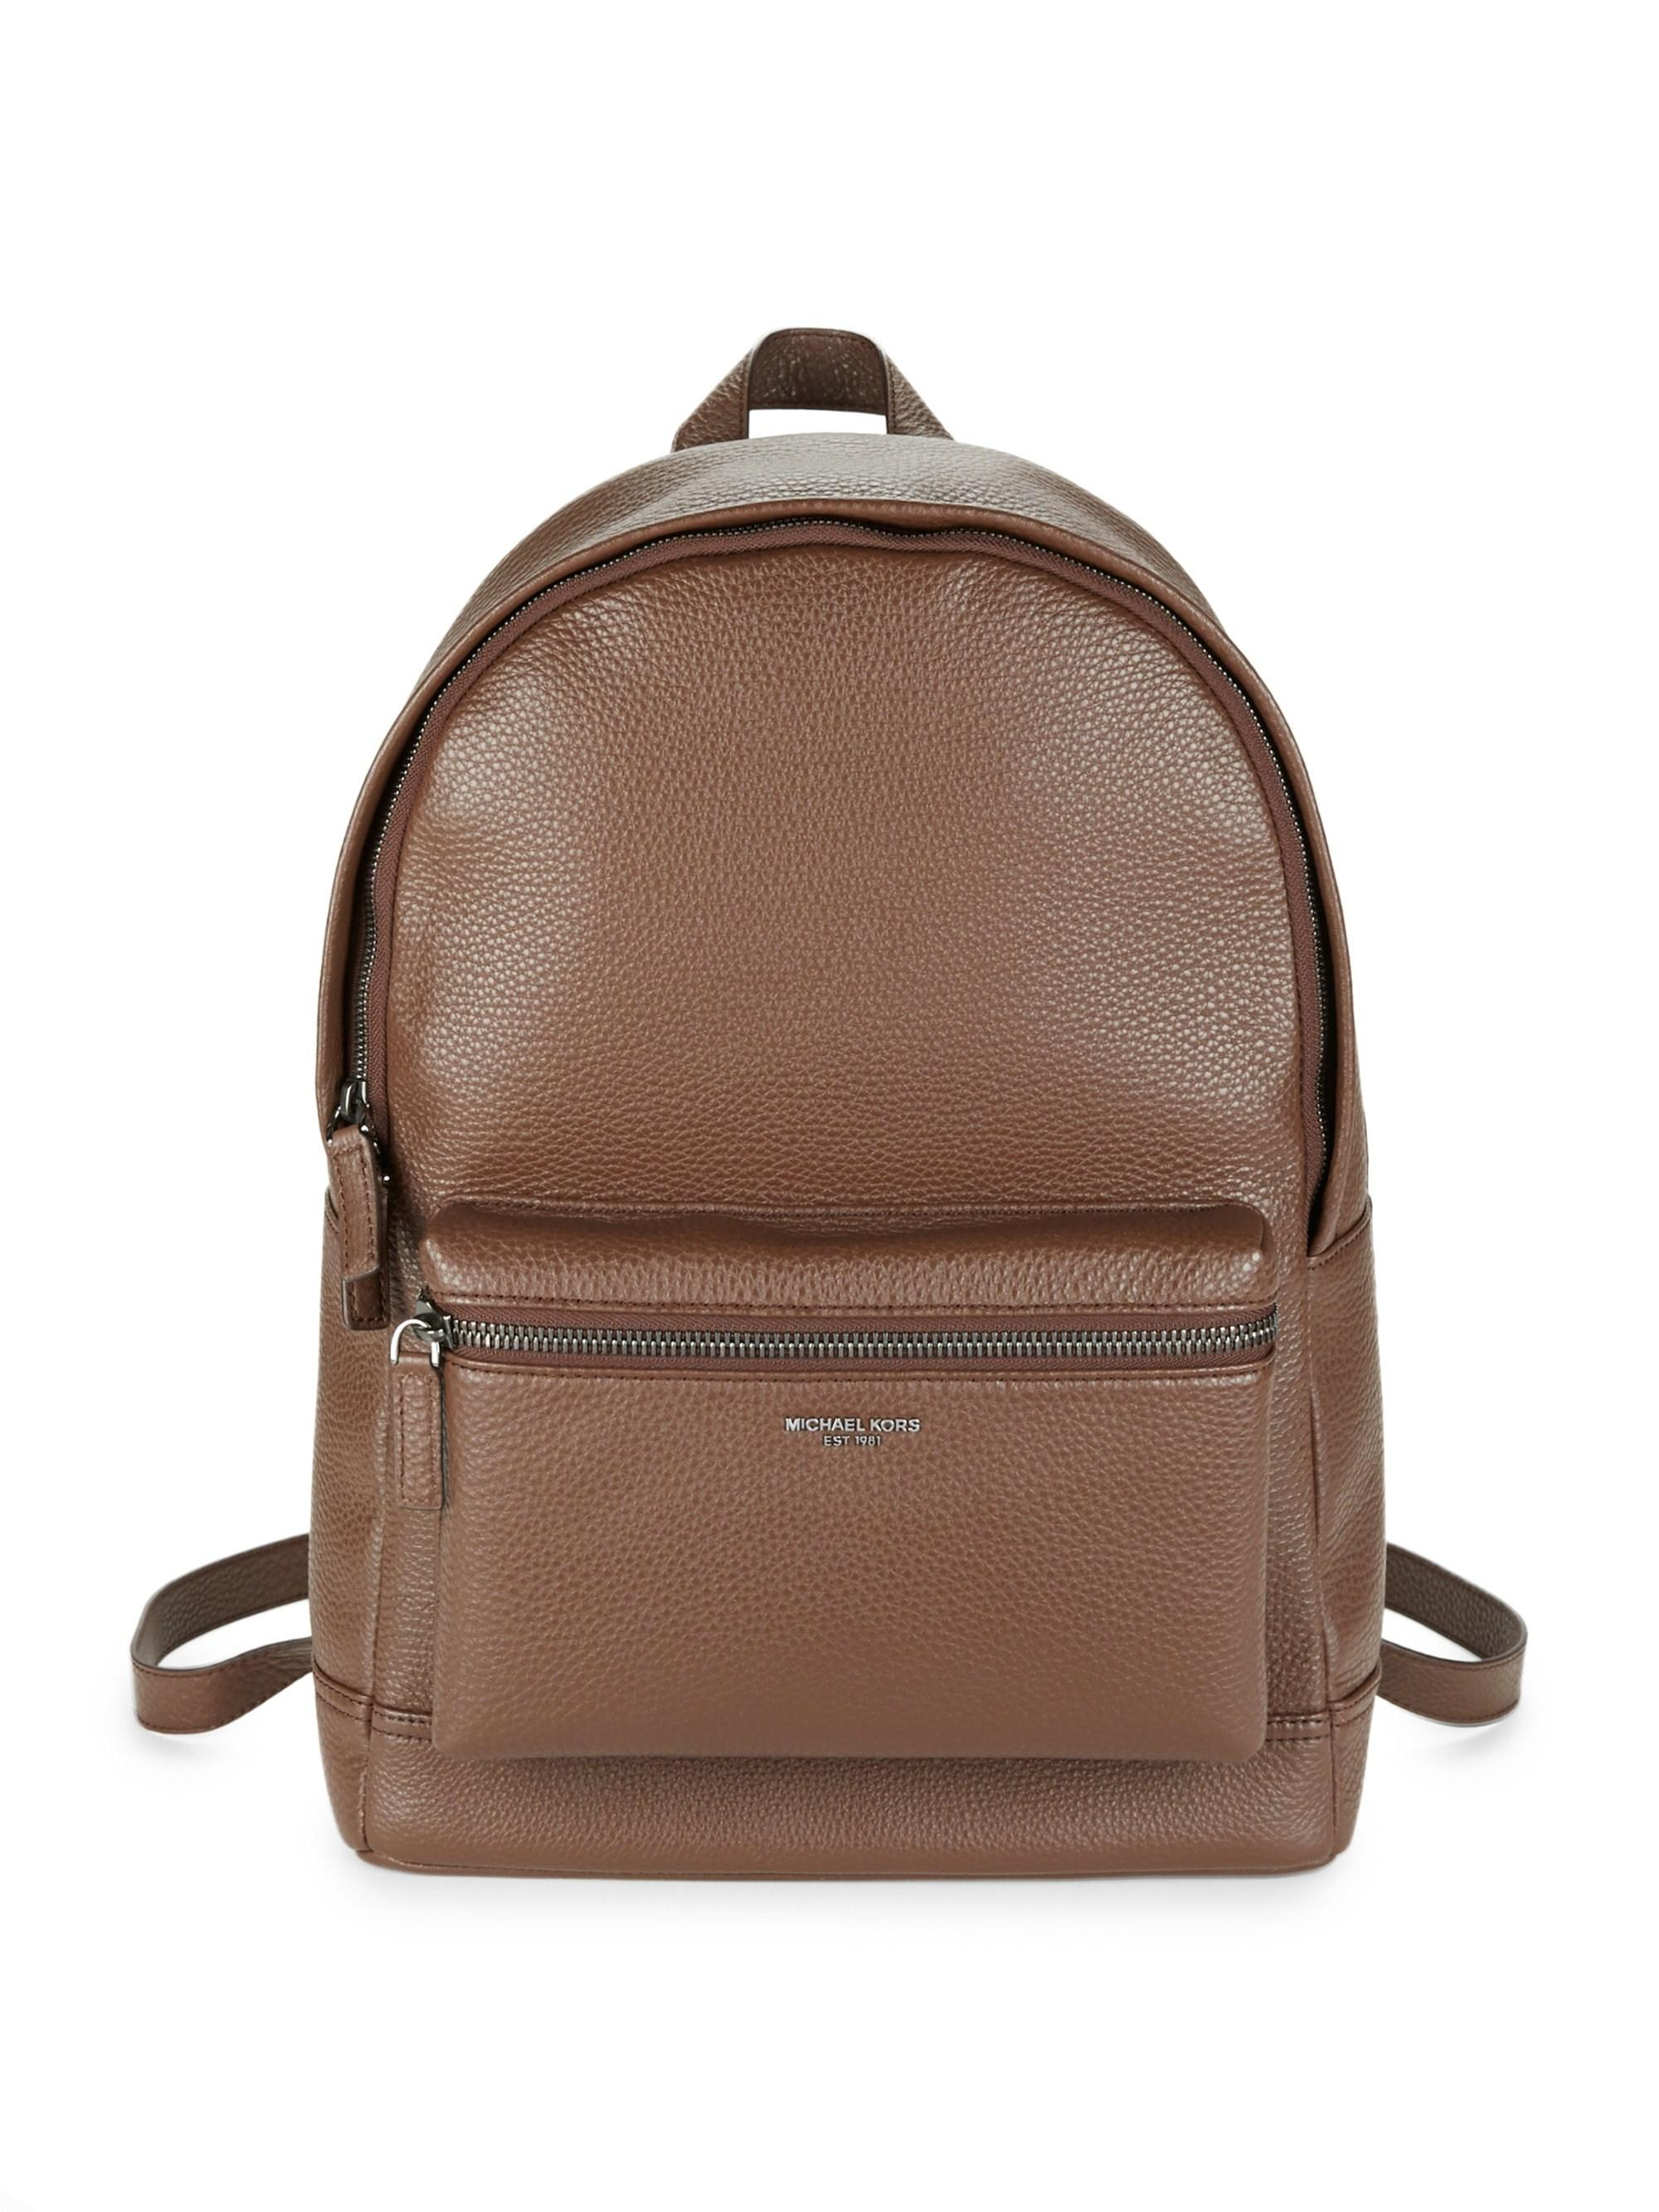 6e502bbb07d7 Michael Kors. Brown Men's Bryant Pebble-textured Leather Backpack - Luggage